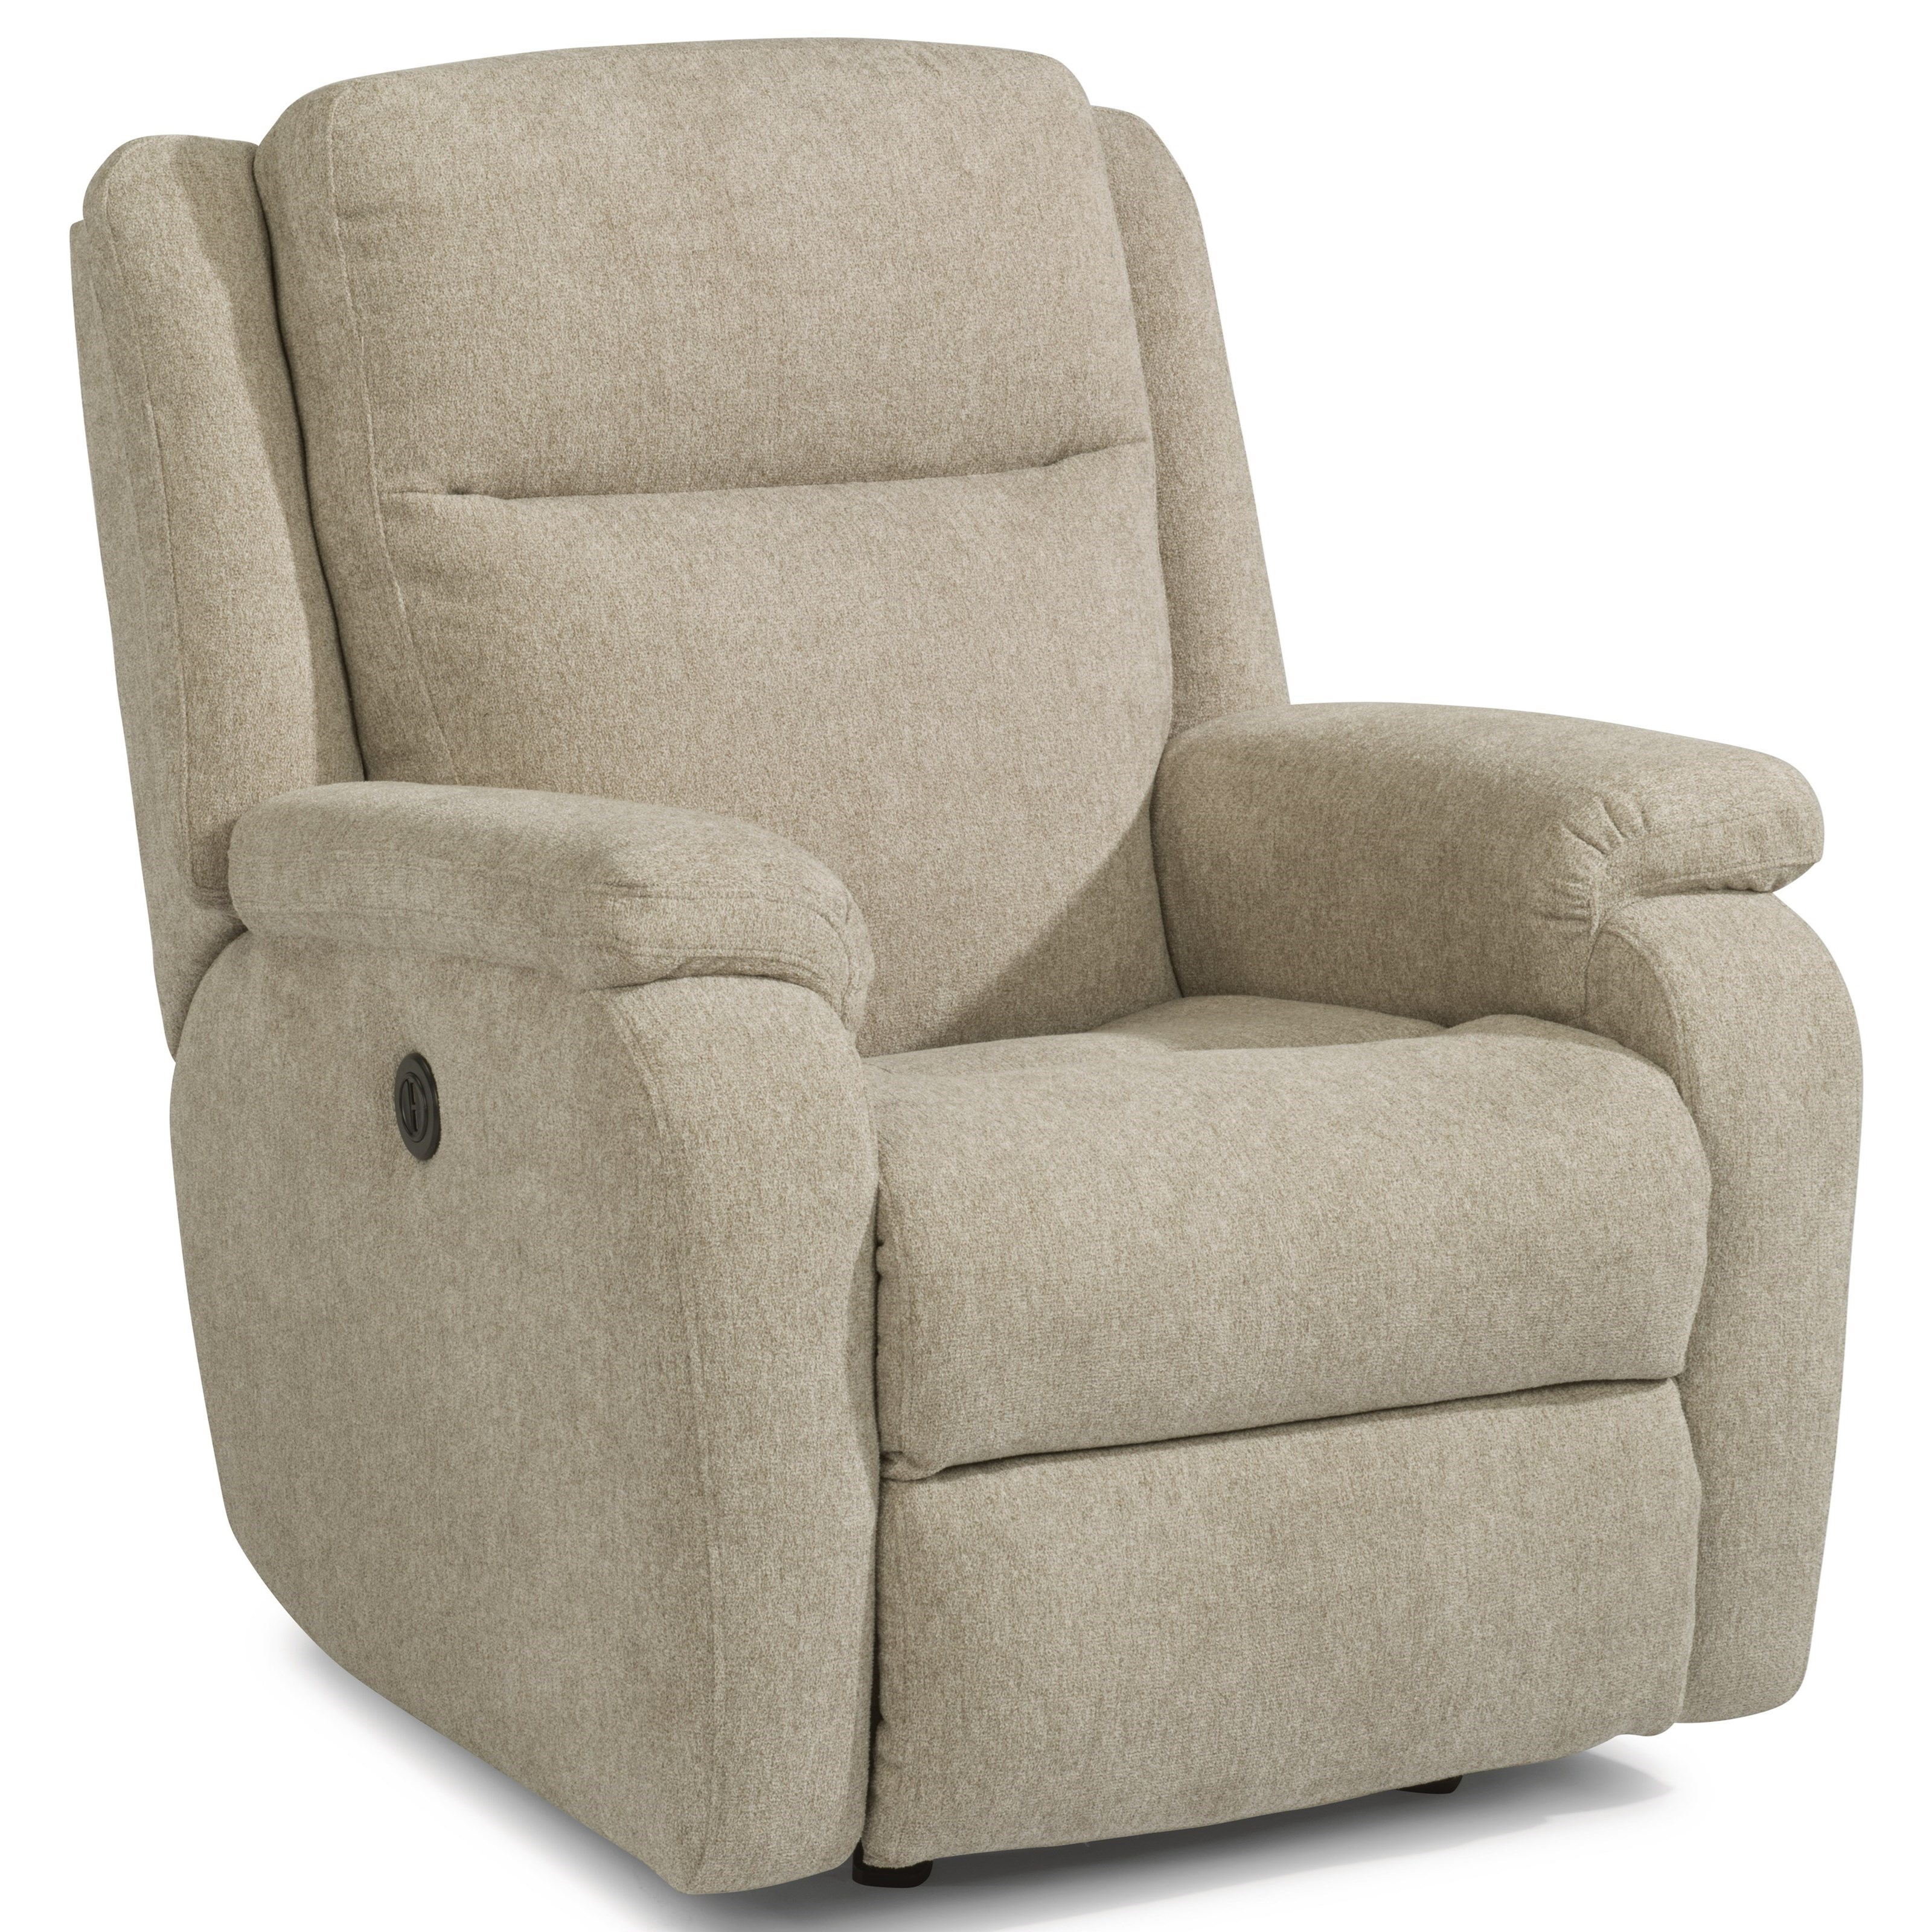 Magnus Power Rocking Recliner by Flexsteel at Rooms and Rest